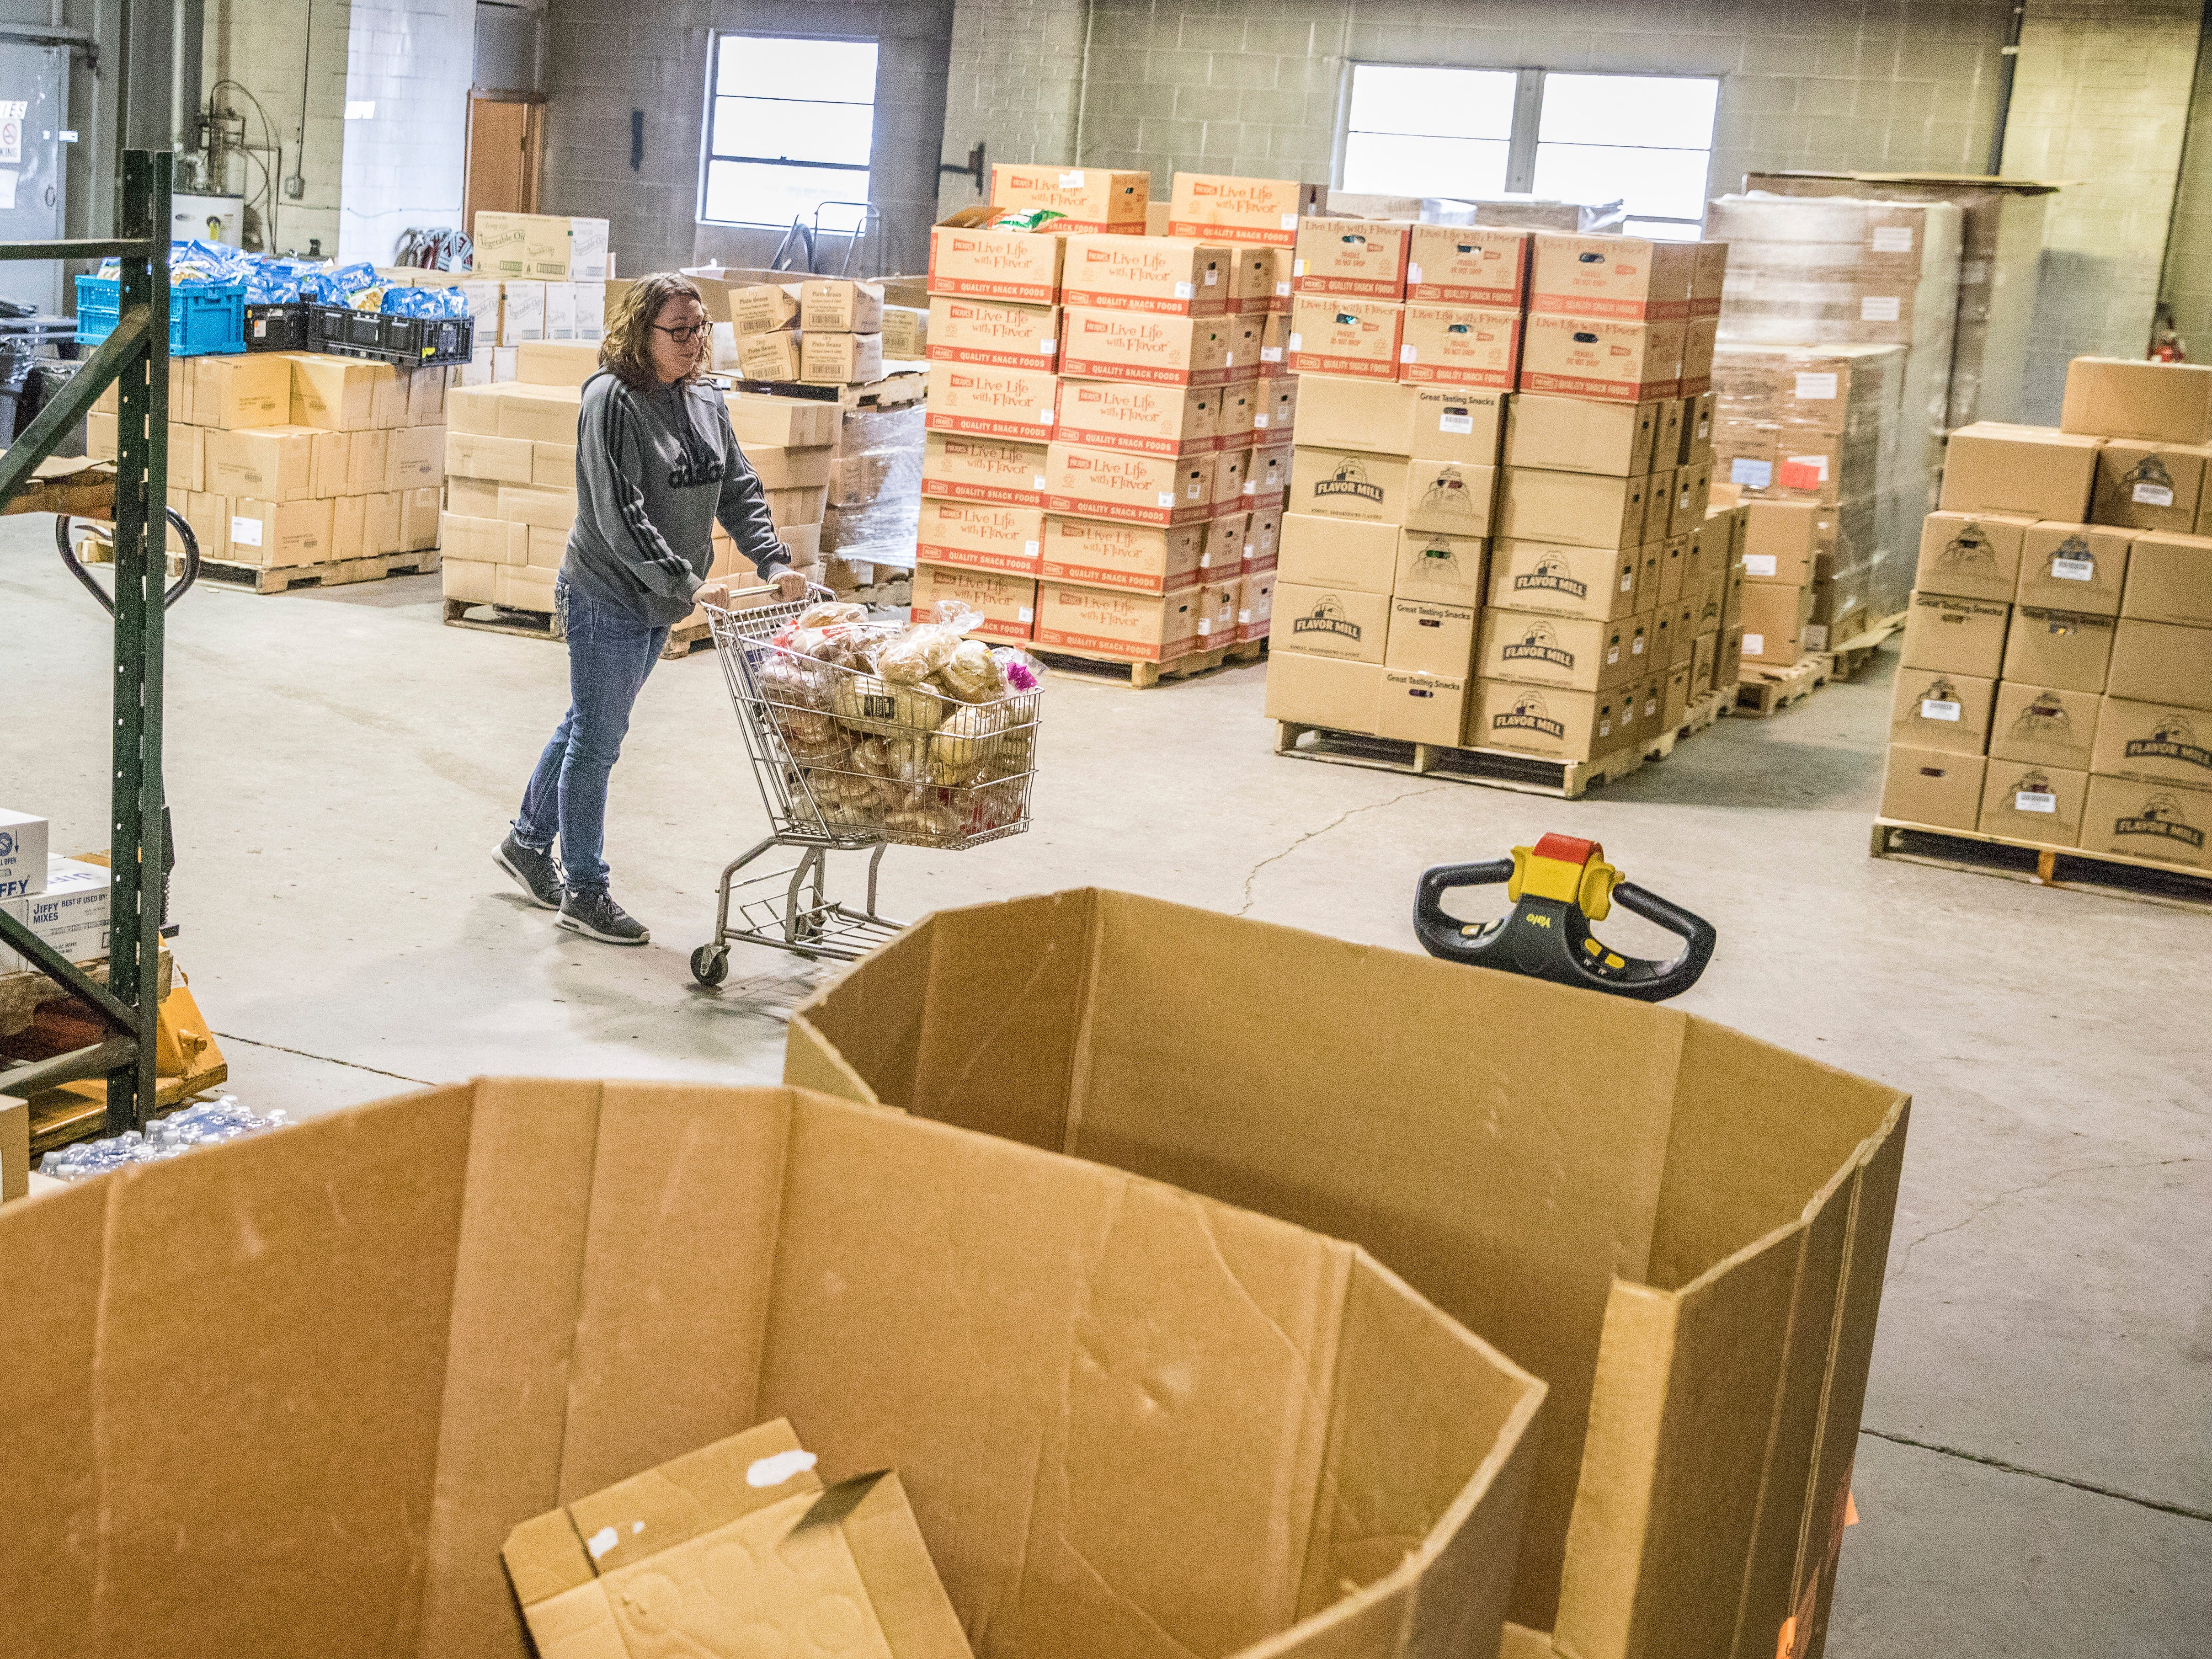 Missy Johnson wheels a grocery cart full of bread through the warehouse of the Good Samaritan Food Pantry for it to be stocked for clients.